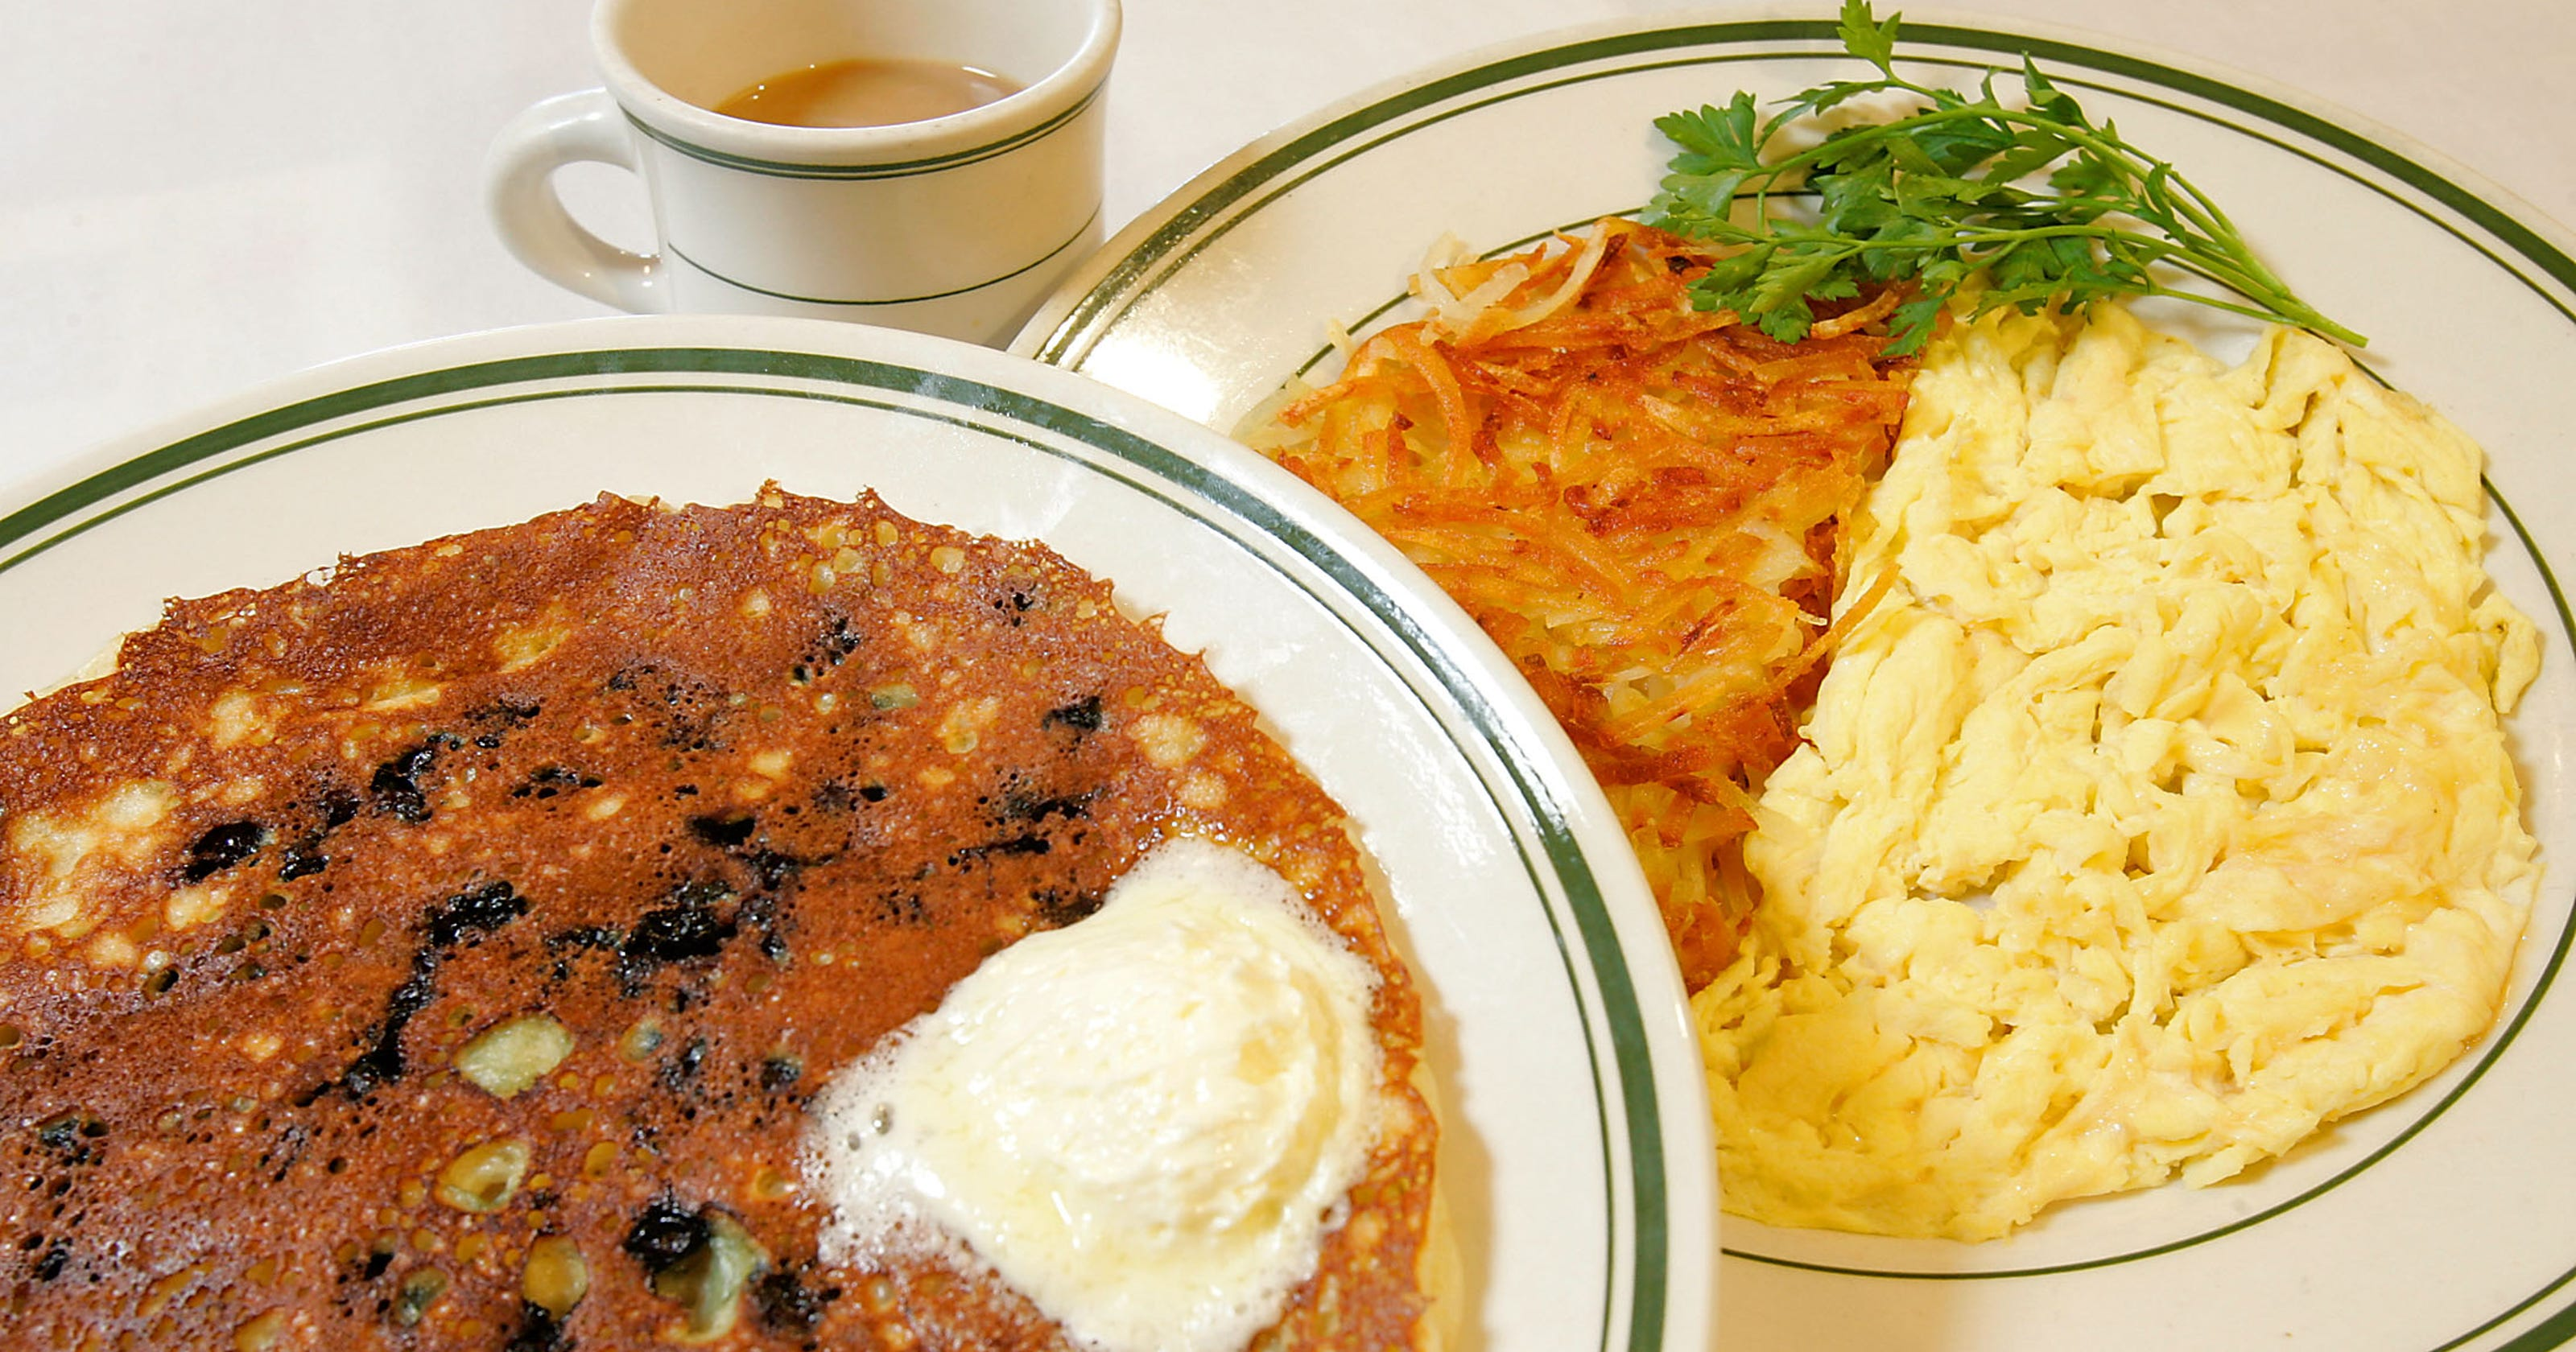 10 Places To Get Breakfast In The Coachella Valley